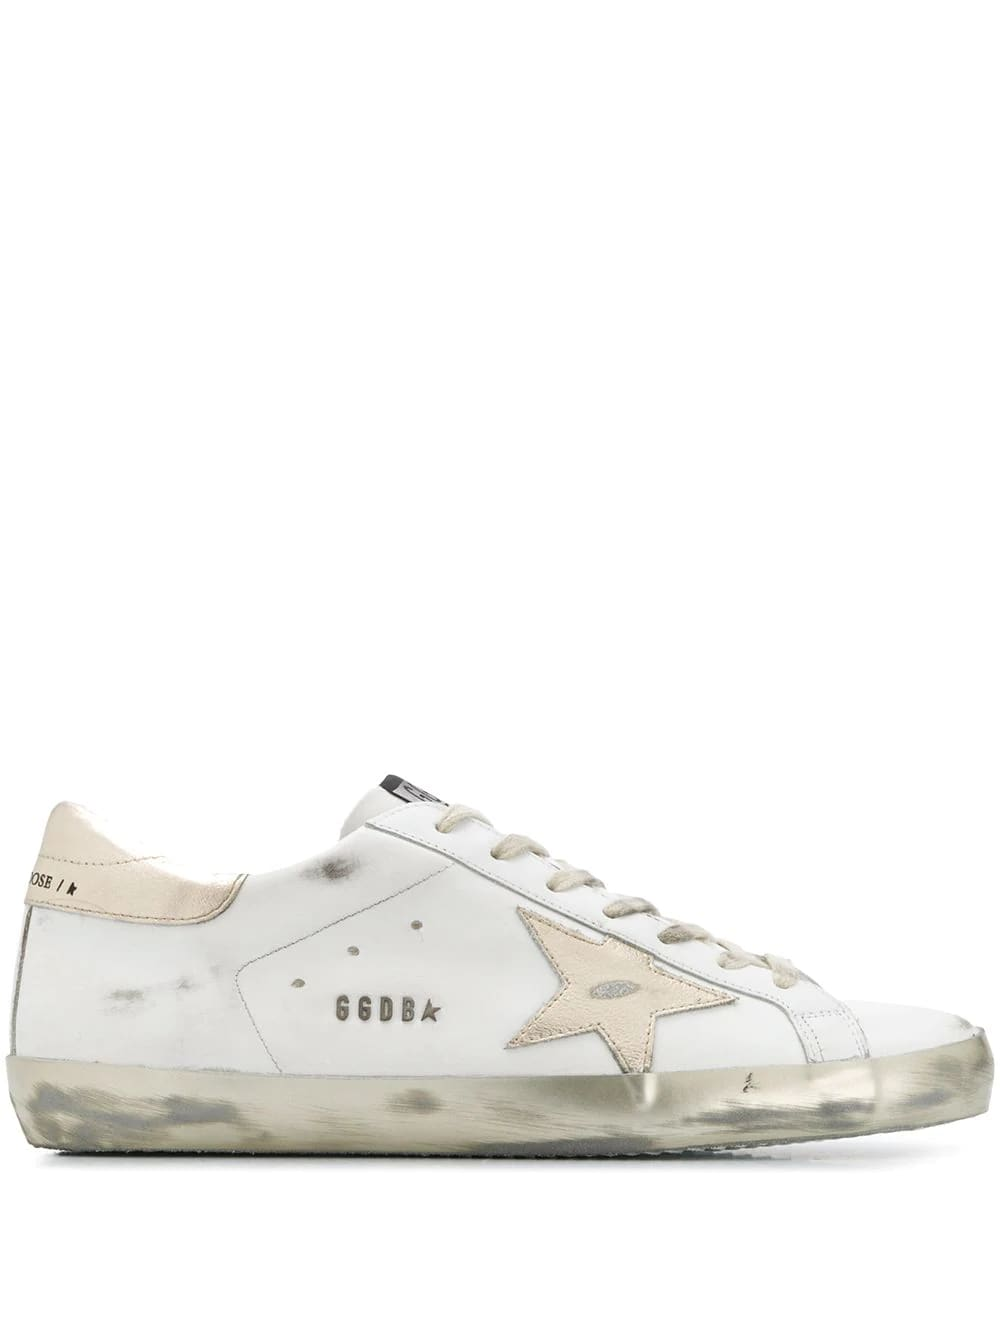 Golden Goose Man White Super-star Sneakers With Gold Laminated Spoiler And Star